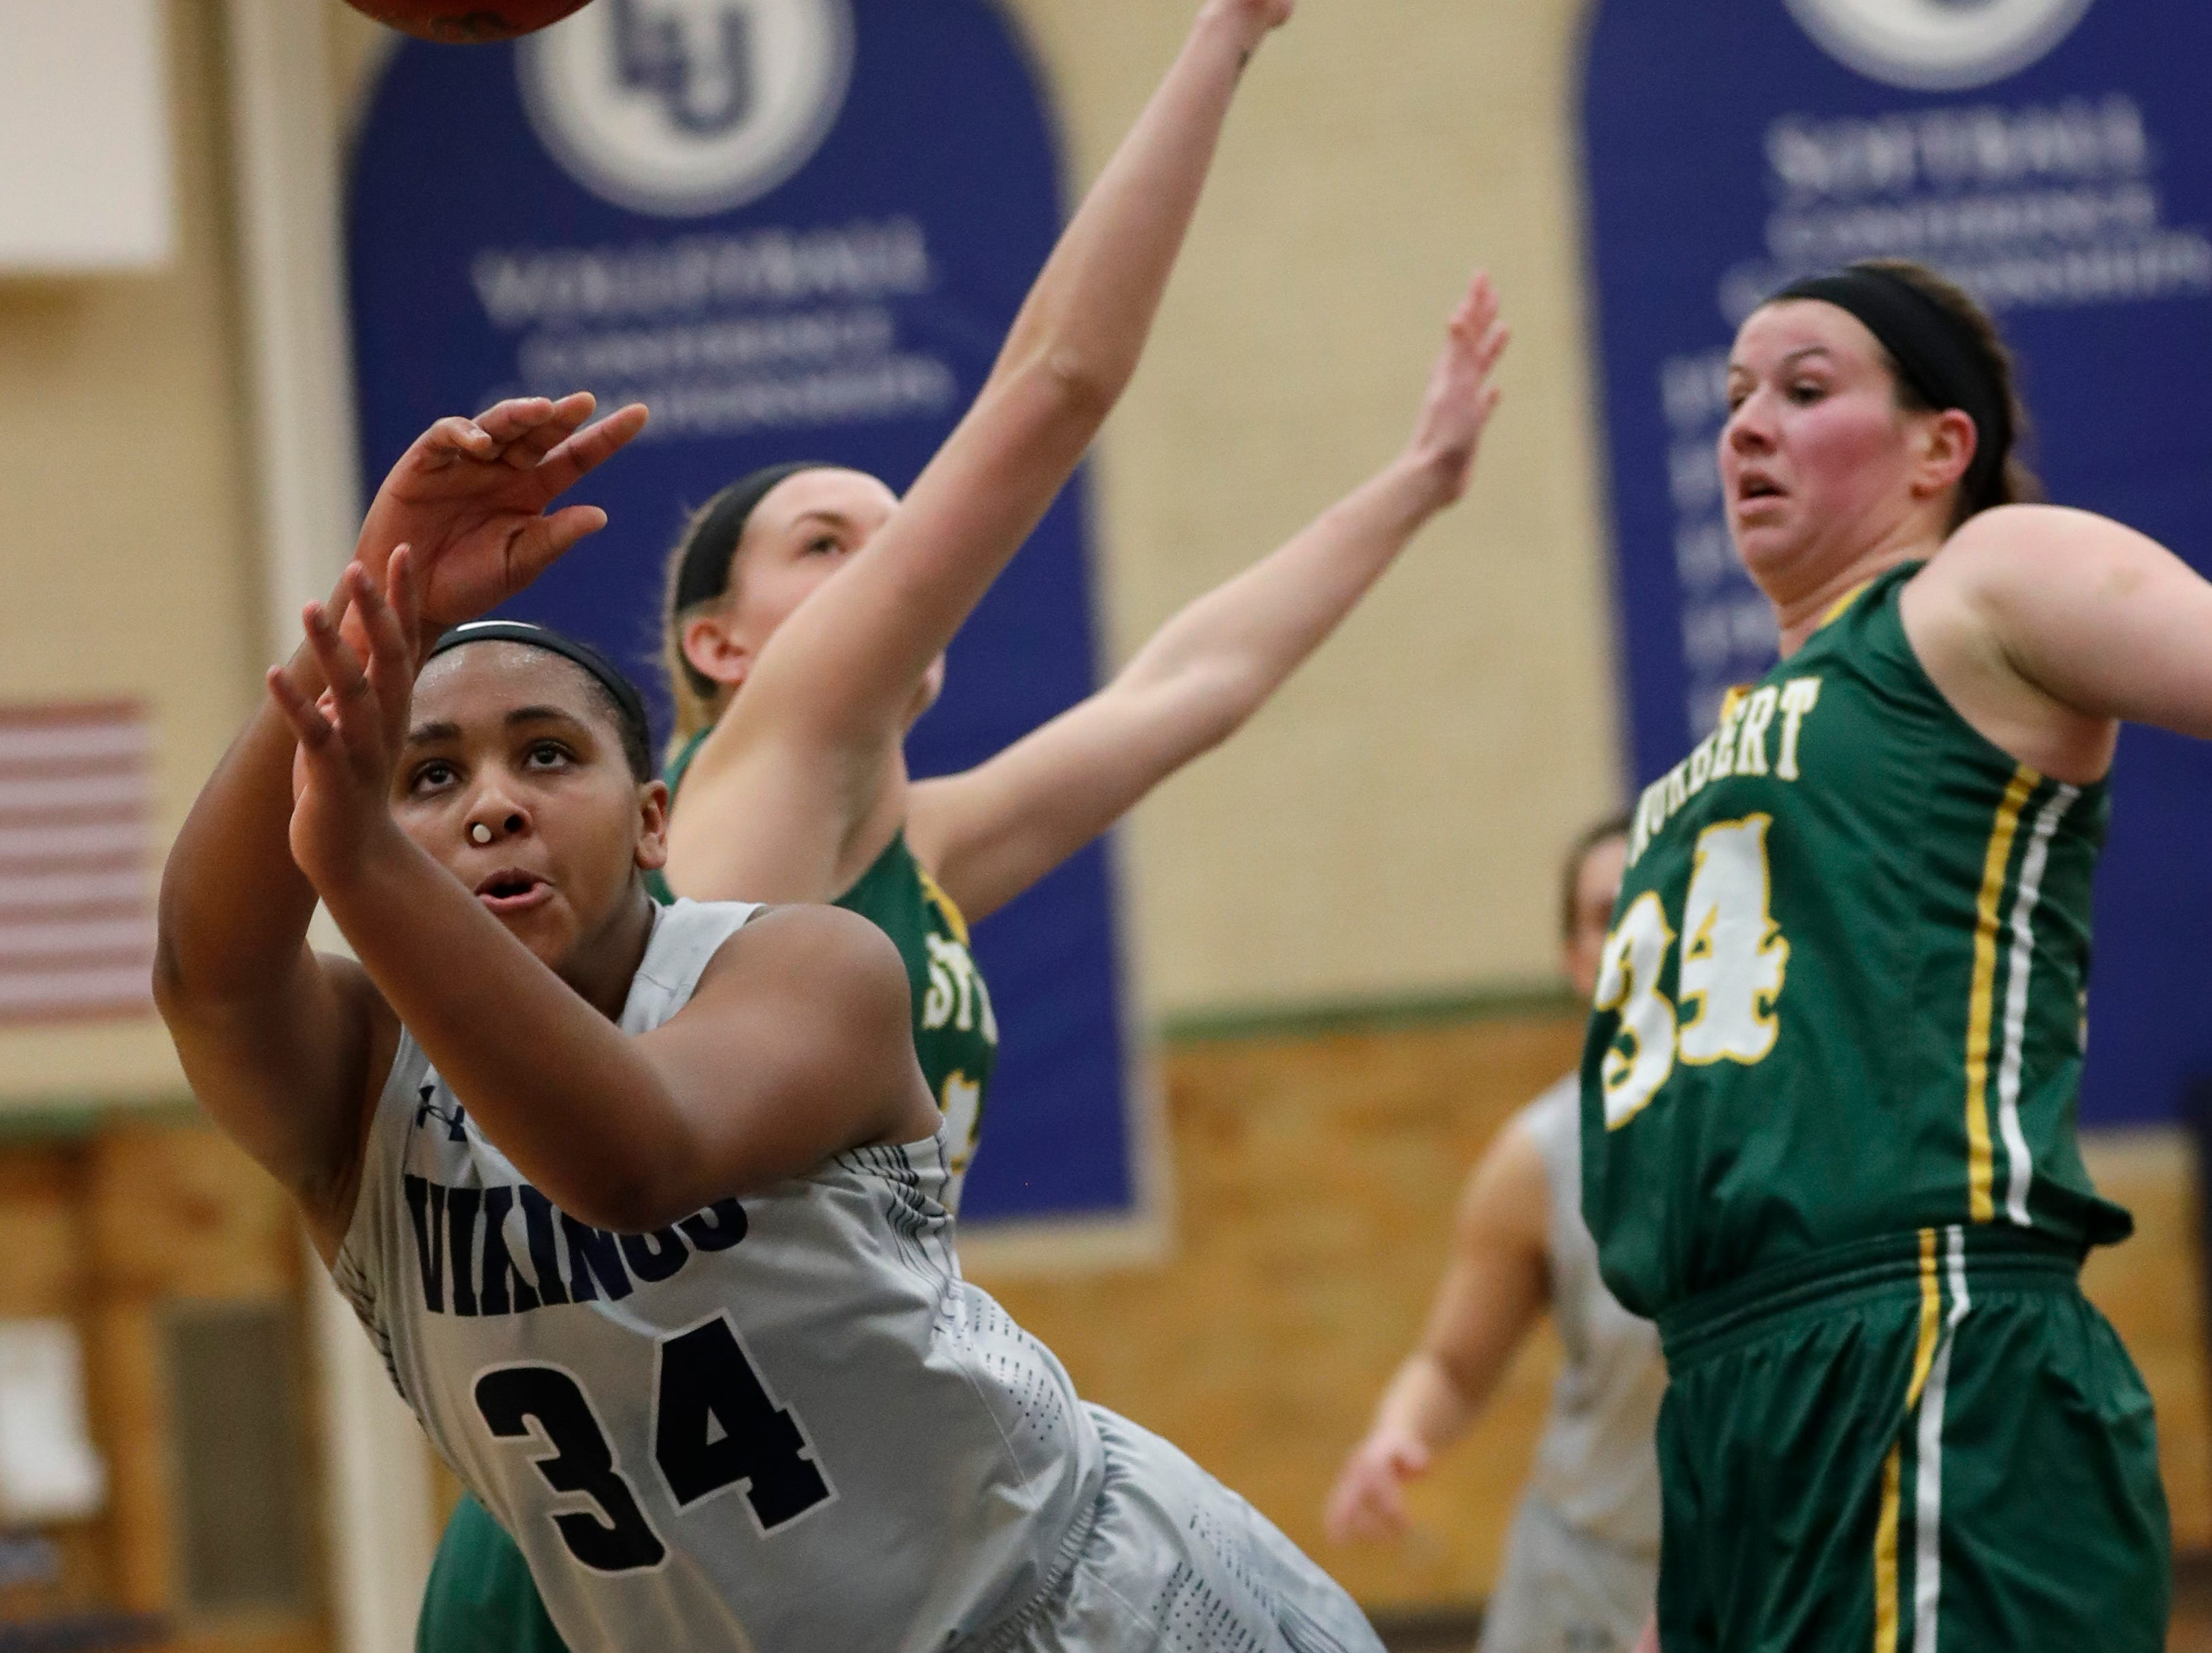 Lawrence University's Kenya Earl, center, drives to the basket against St. Norbert College's Jessica Boerner, left, and Hannah Ciesielczyk, right, during their women's basketball game Thursday, January 31, 2019, at Alexander Gymnasium in Appleton, Wis. A foul was called on Ciesielczyk on the play.